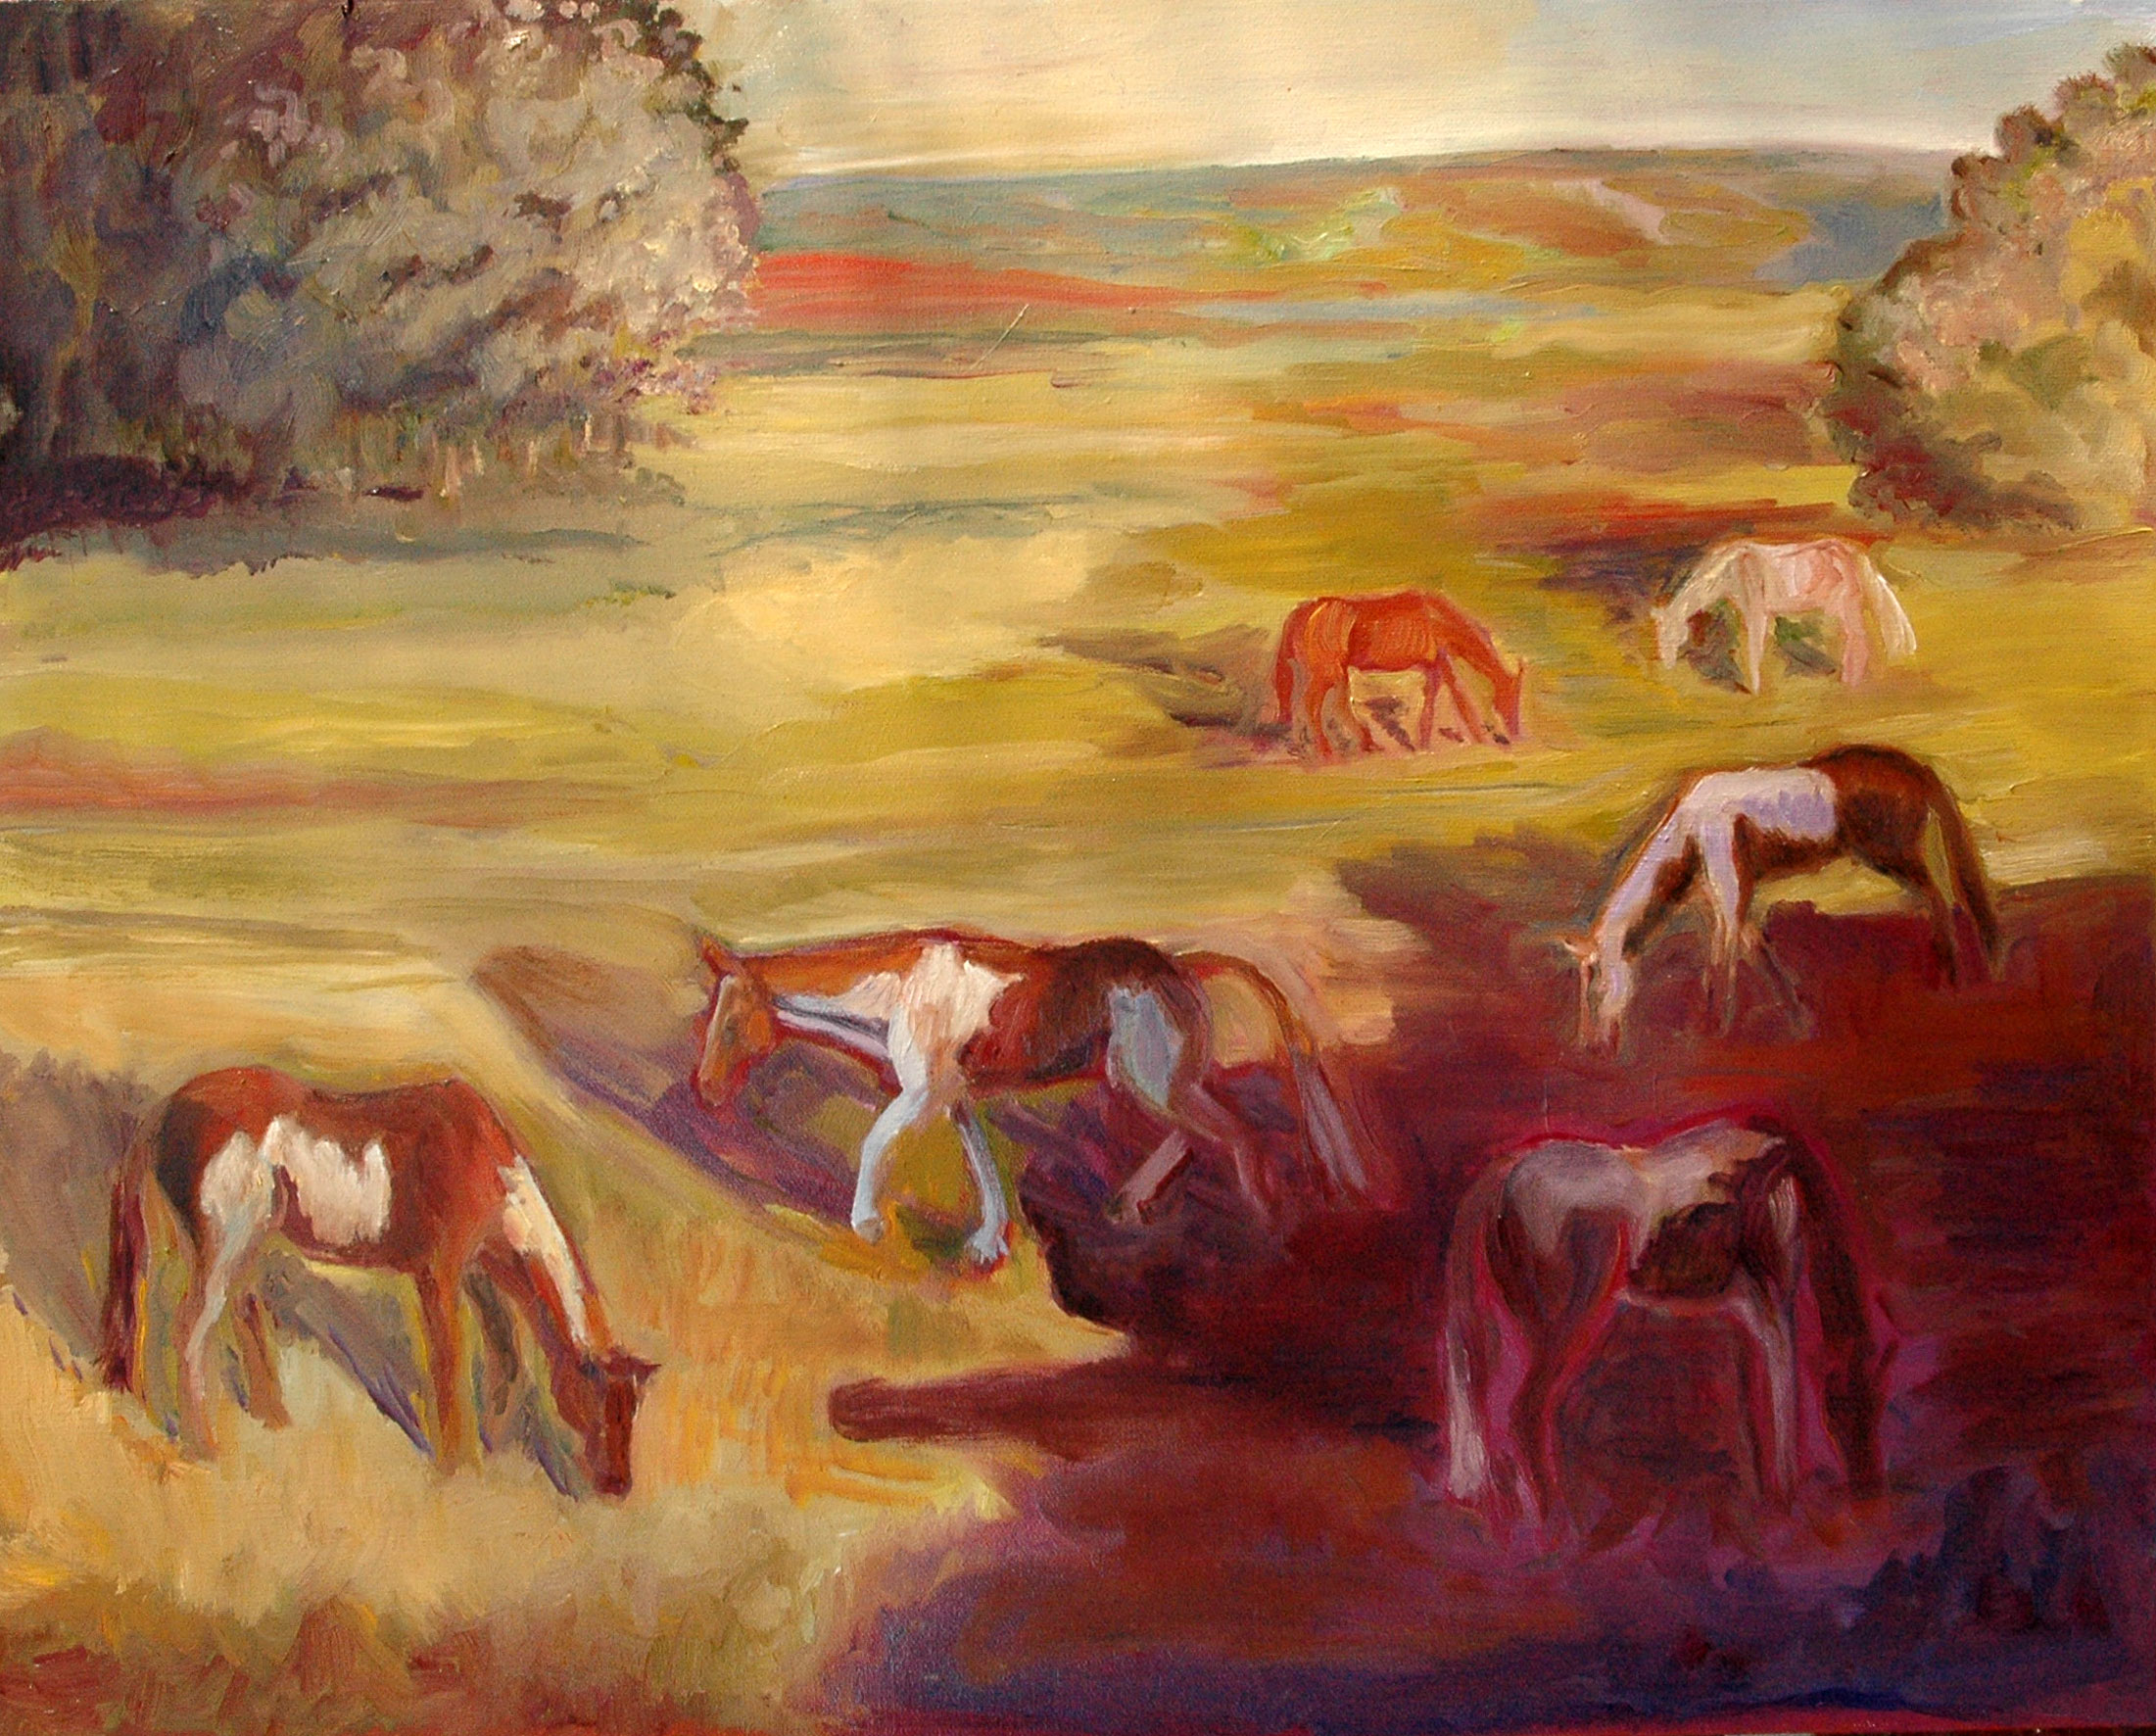 Painted Horses, Painted Shadows